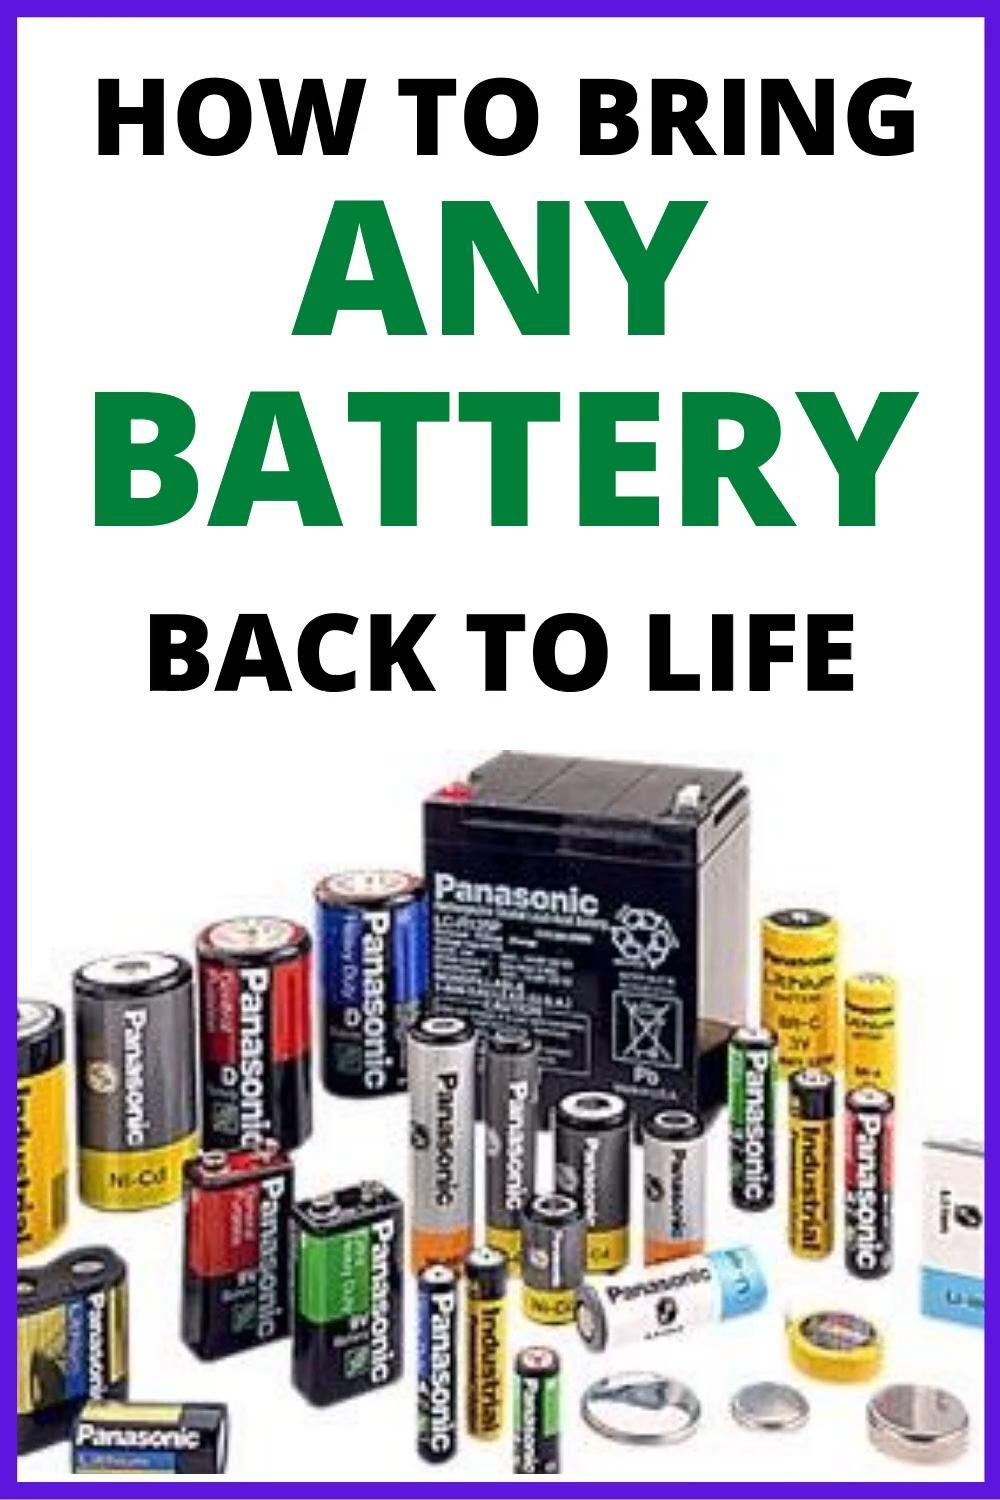 How To Restore A Battery Reconditioning Nicad Batteries Battery Reconditioning Business Fix It Video Battery Repair Batteries Diy Car Battery Hacks